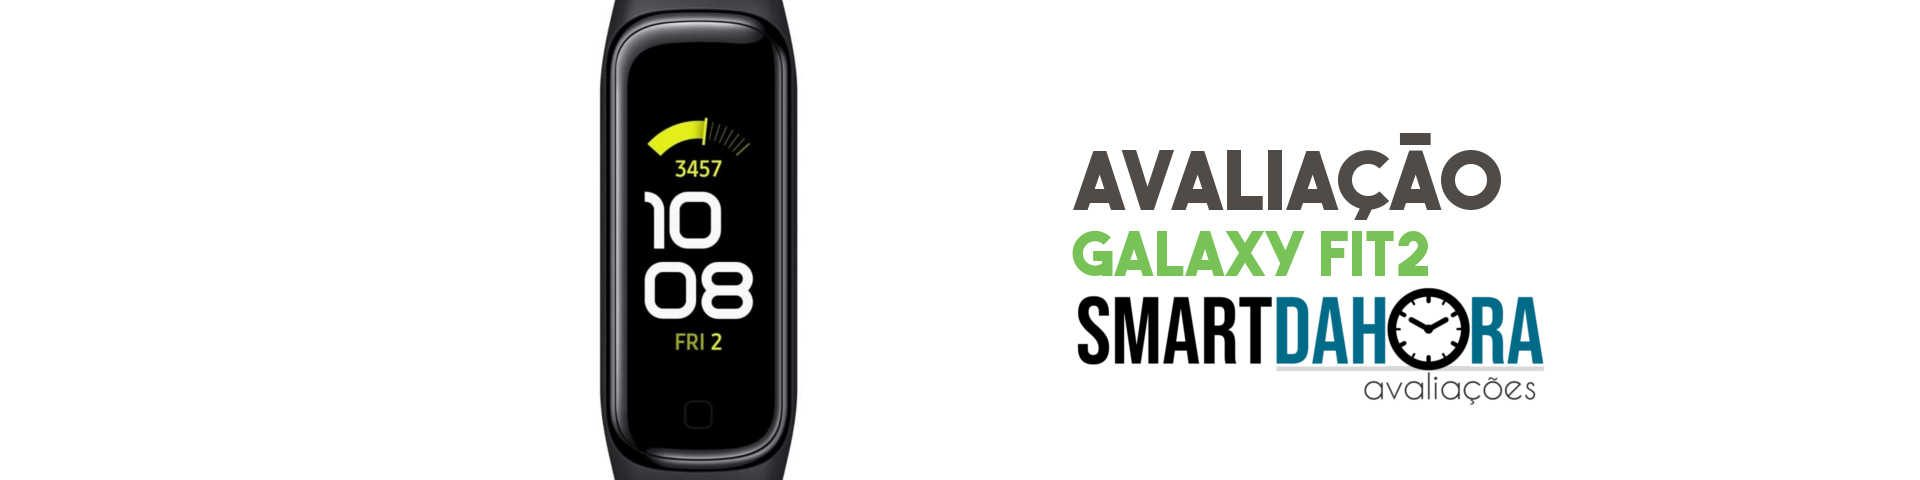 galaxy fit2 avaliacao